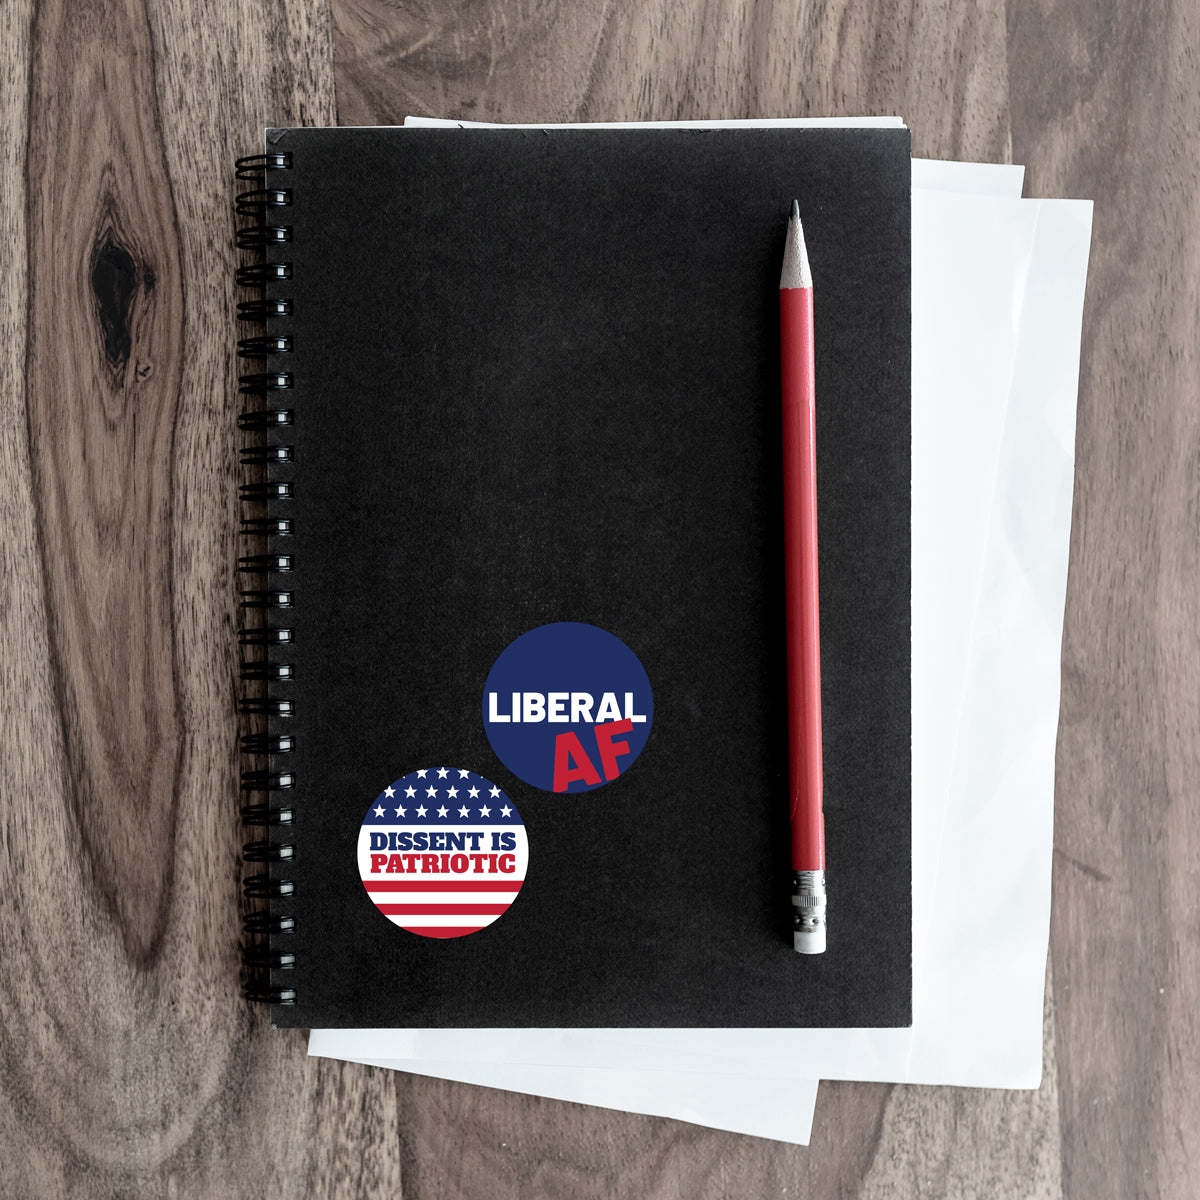 dissent and liberal stickers on a notebook